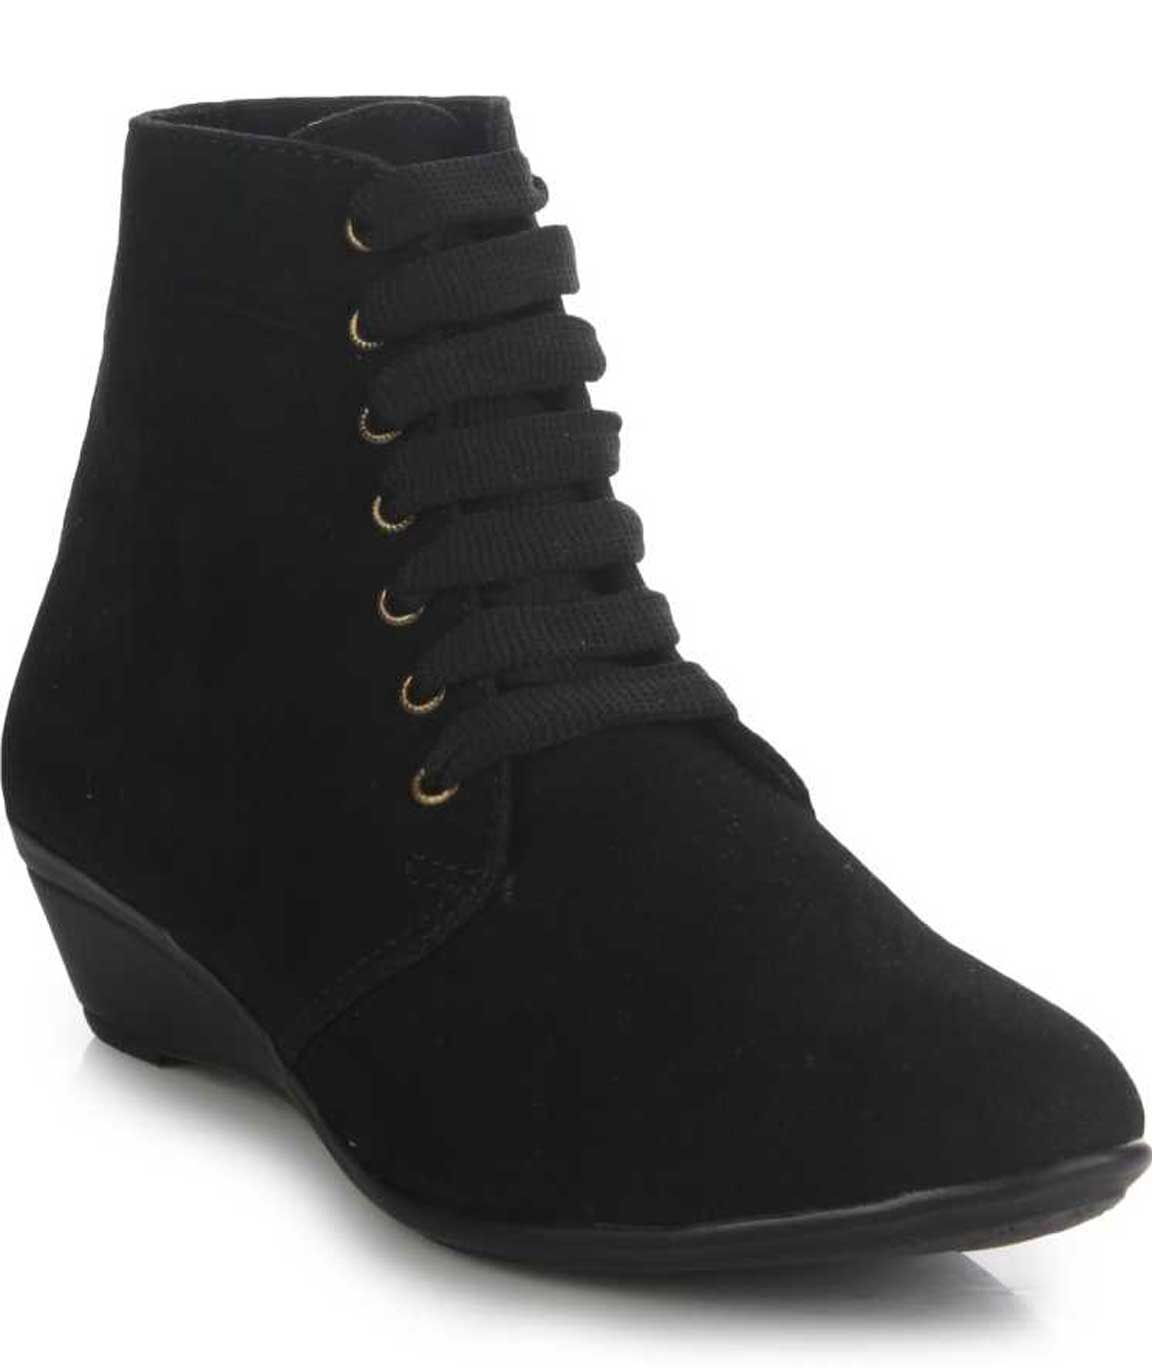 BOOTS FOR WOMEN ( Z-BLACK )